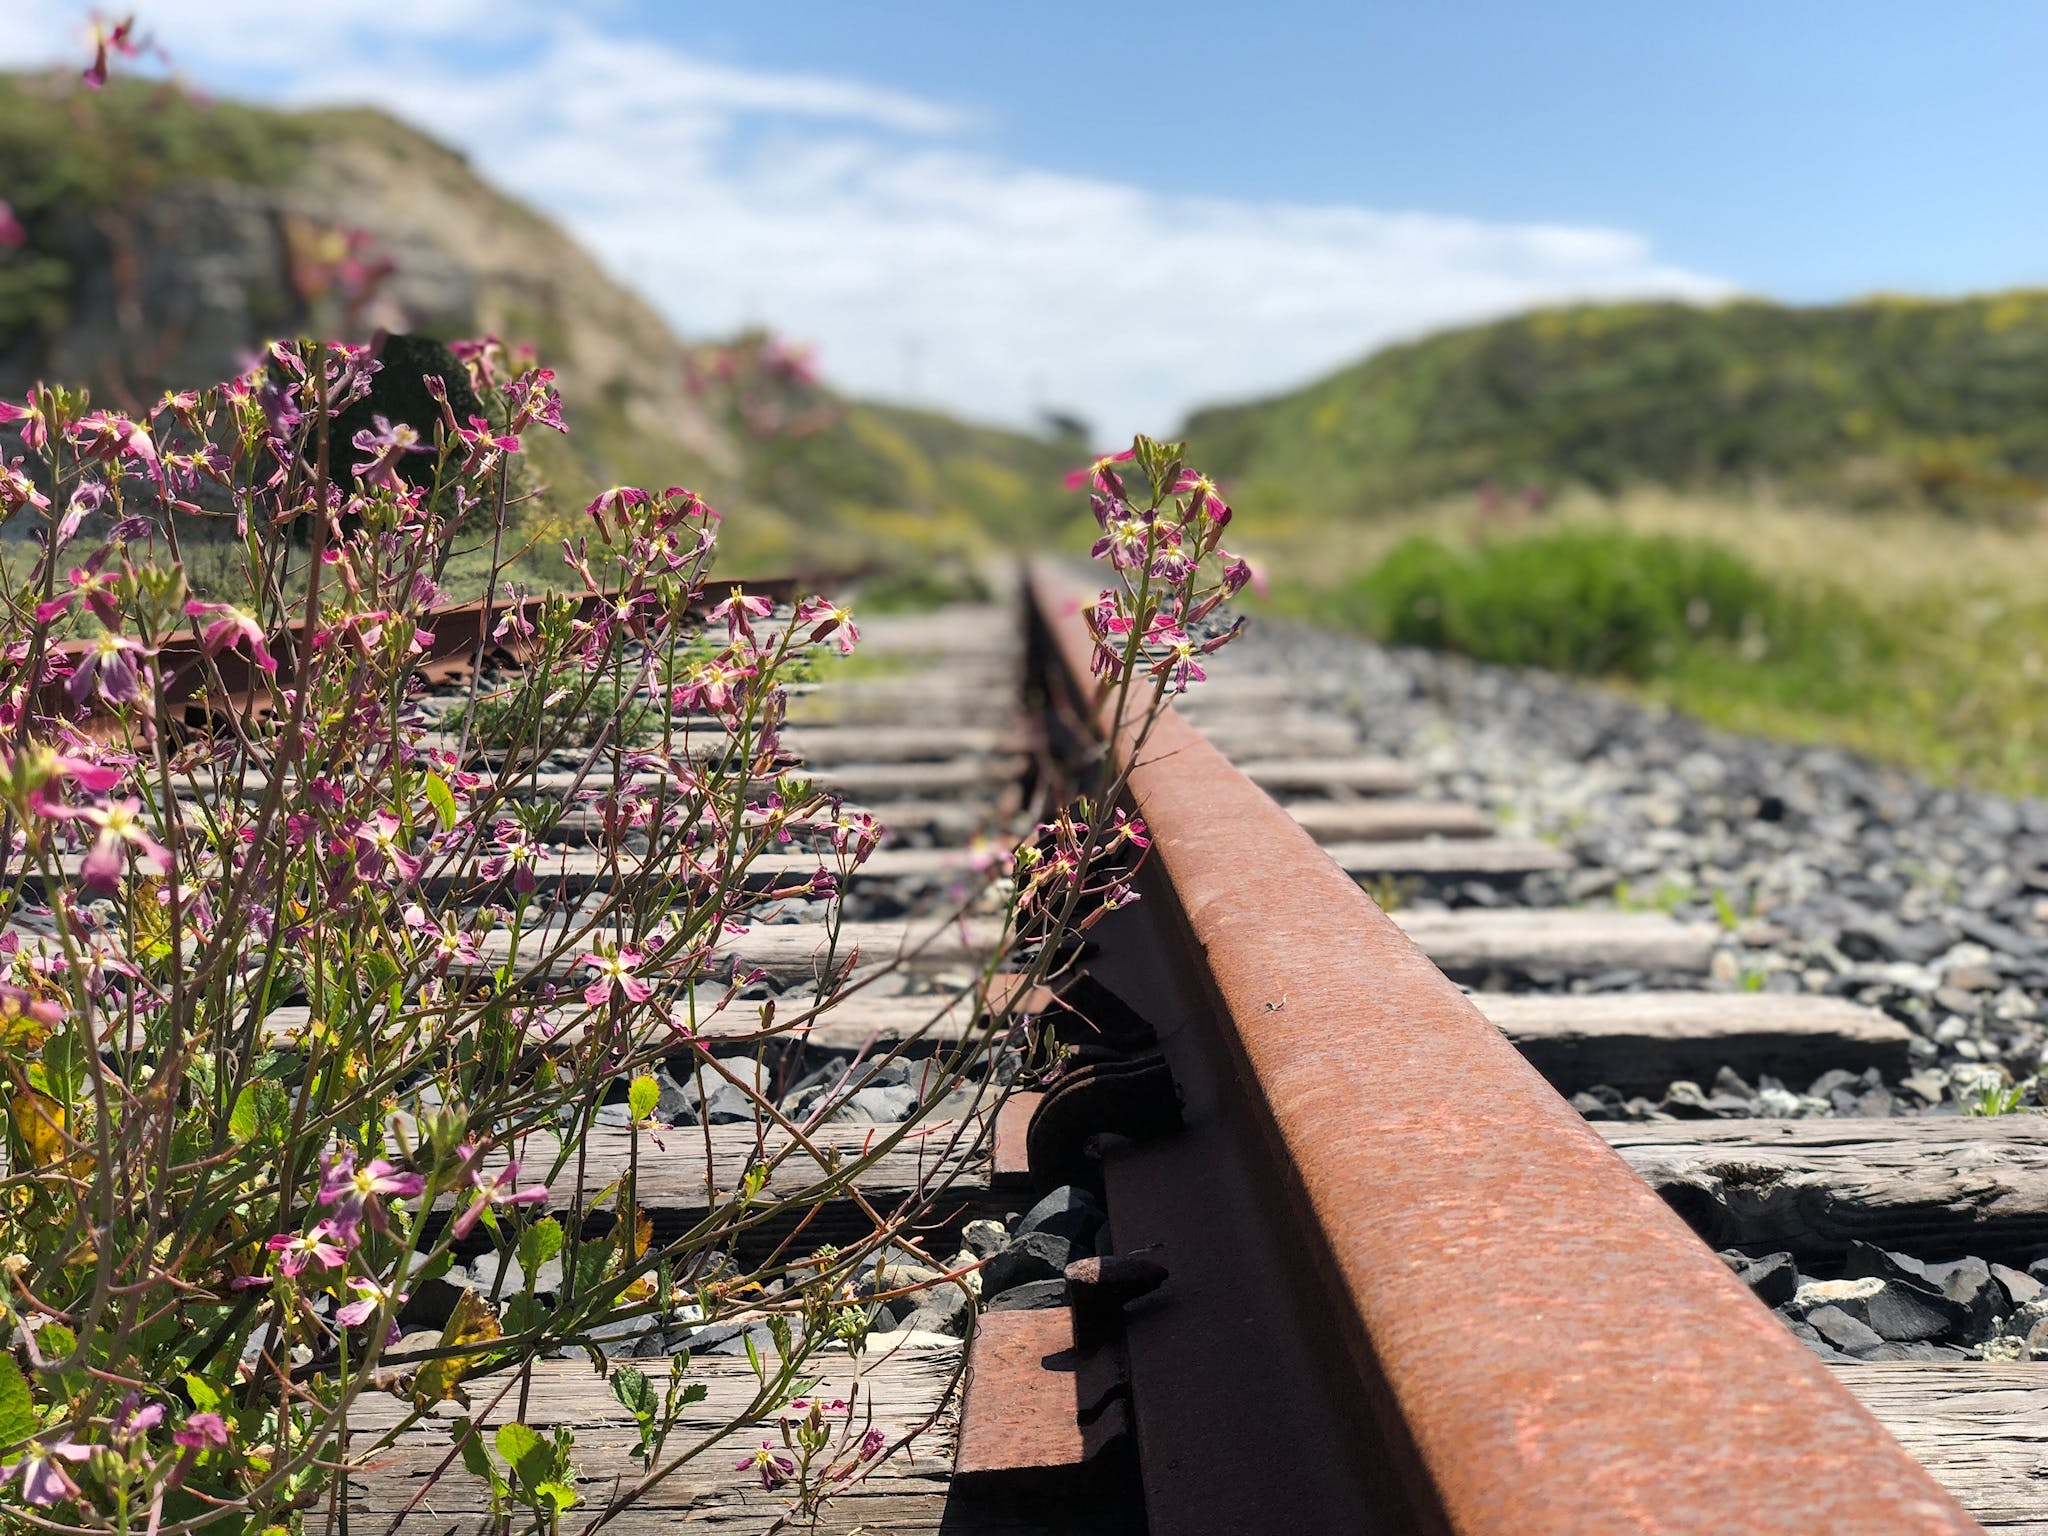 Shallow Focus Photography of Railroad